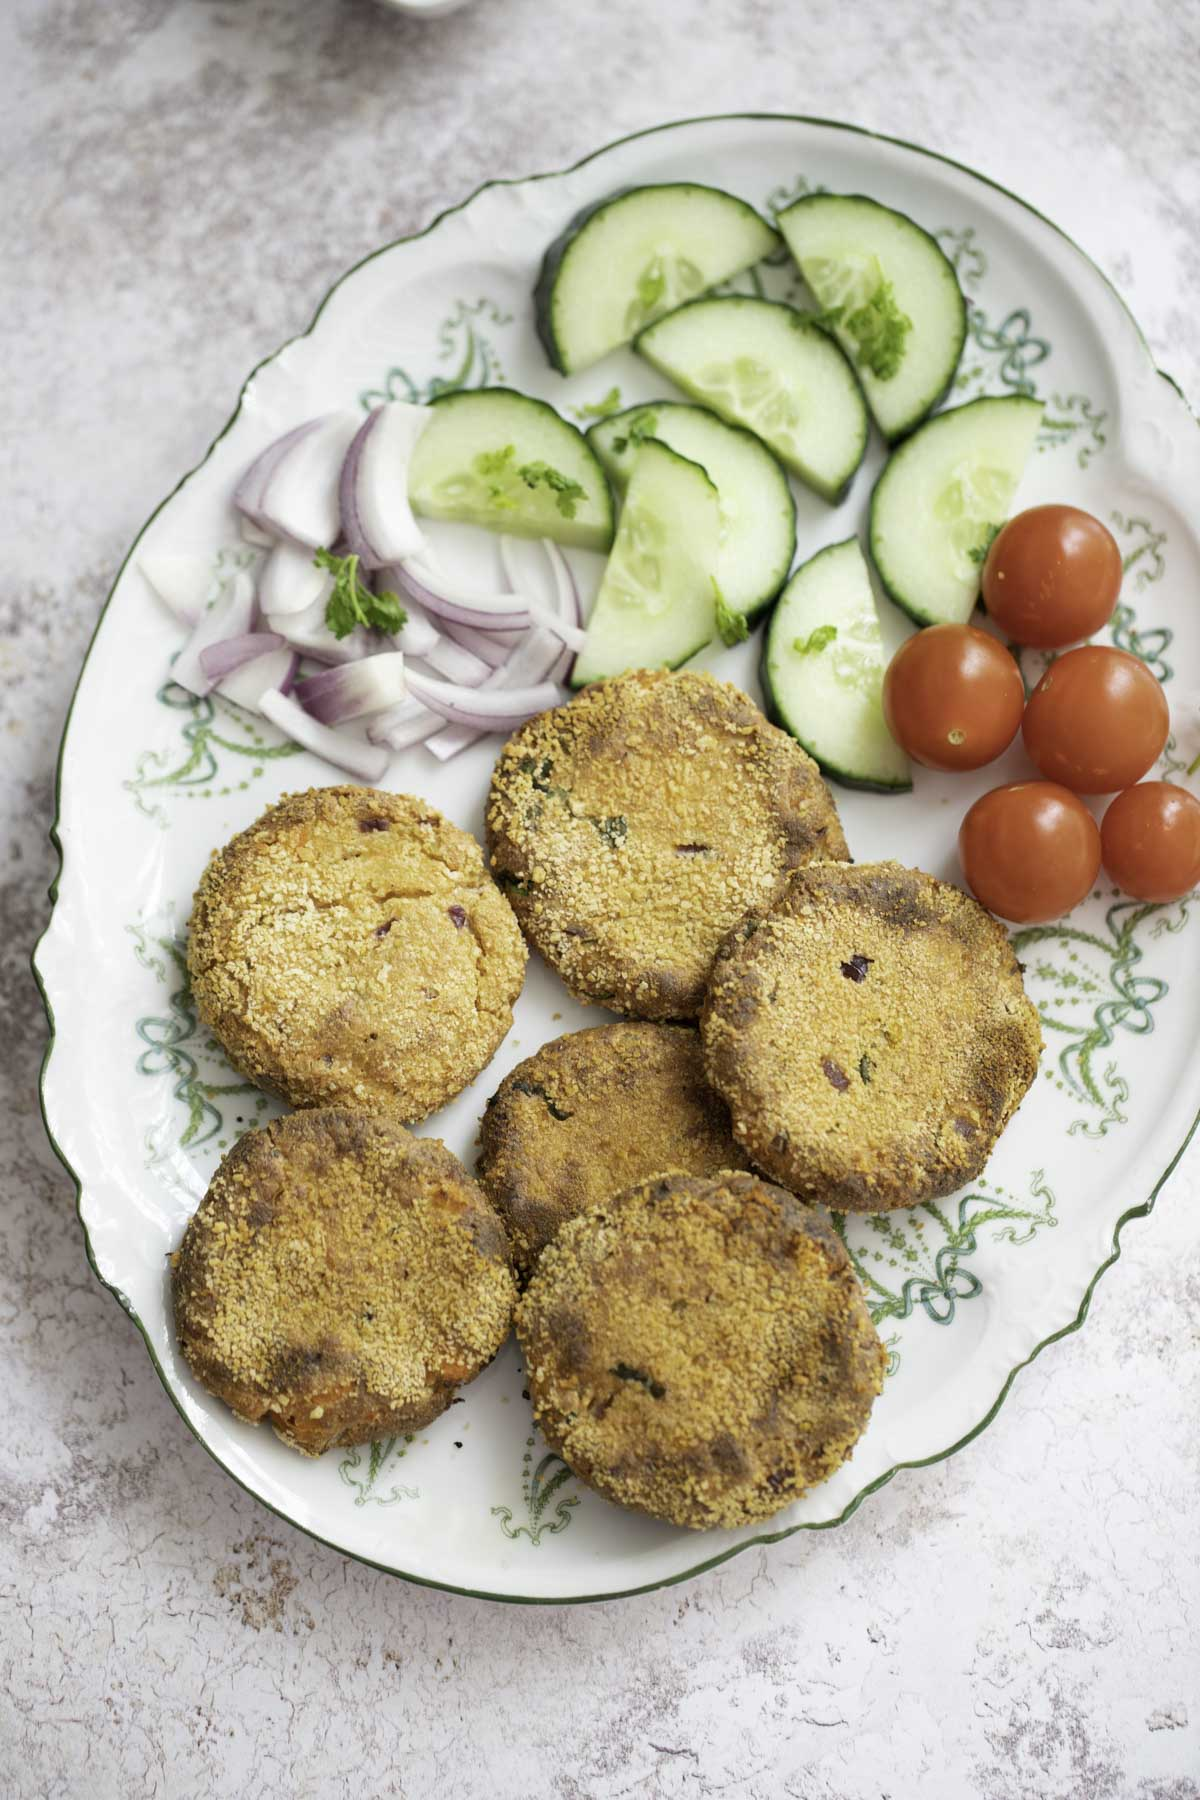 baked paneer cutlet served with salad on a plate